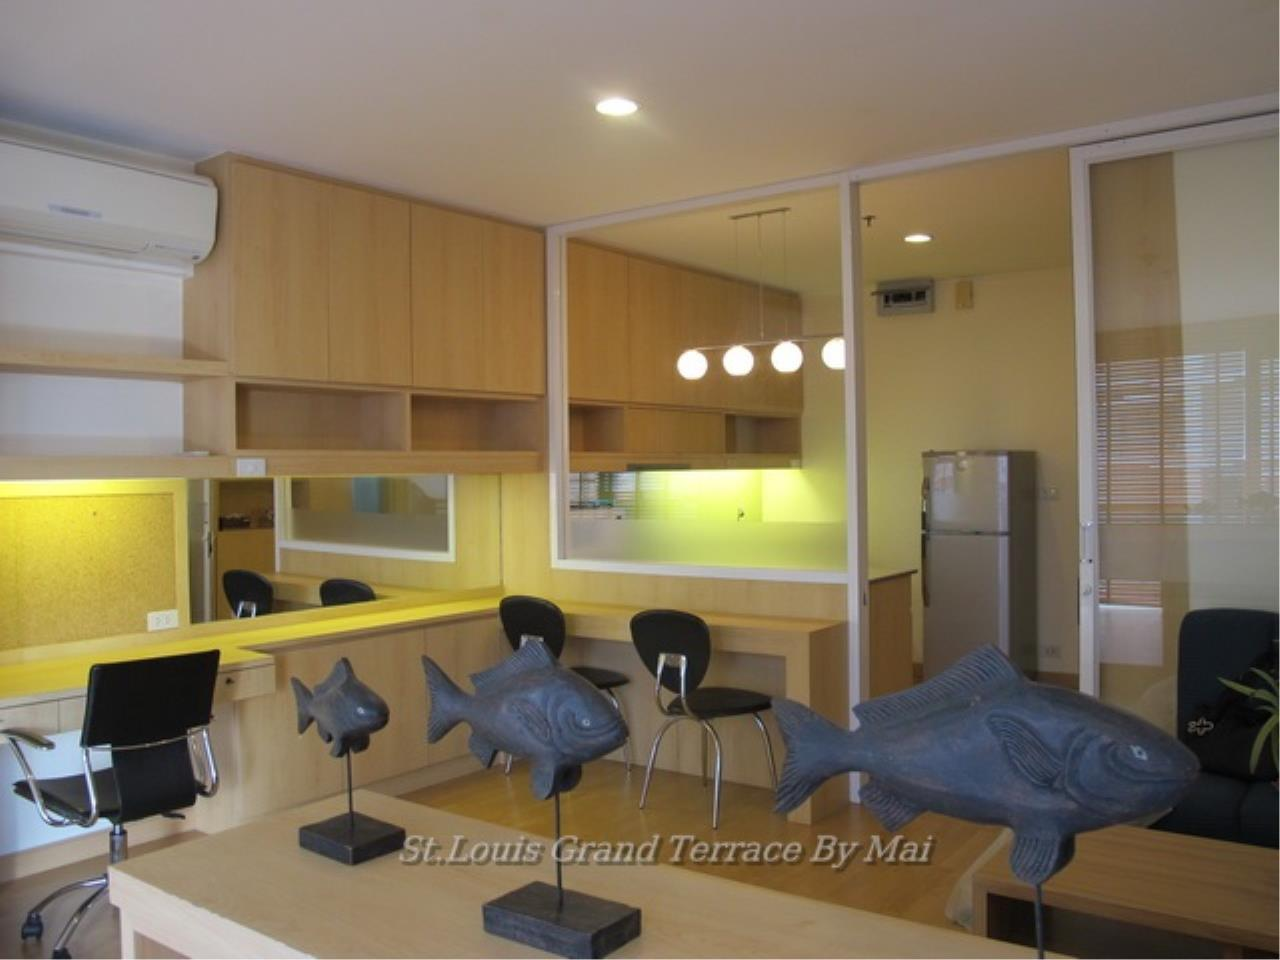 Quality Life Property Agency's For Rent Condo At St. Louis Grand Terrace 1 Bedroom 1 | 17 Floor 18, 000 THB / MONTH 5